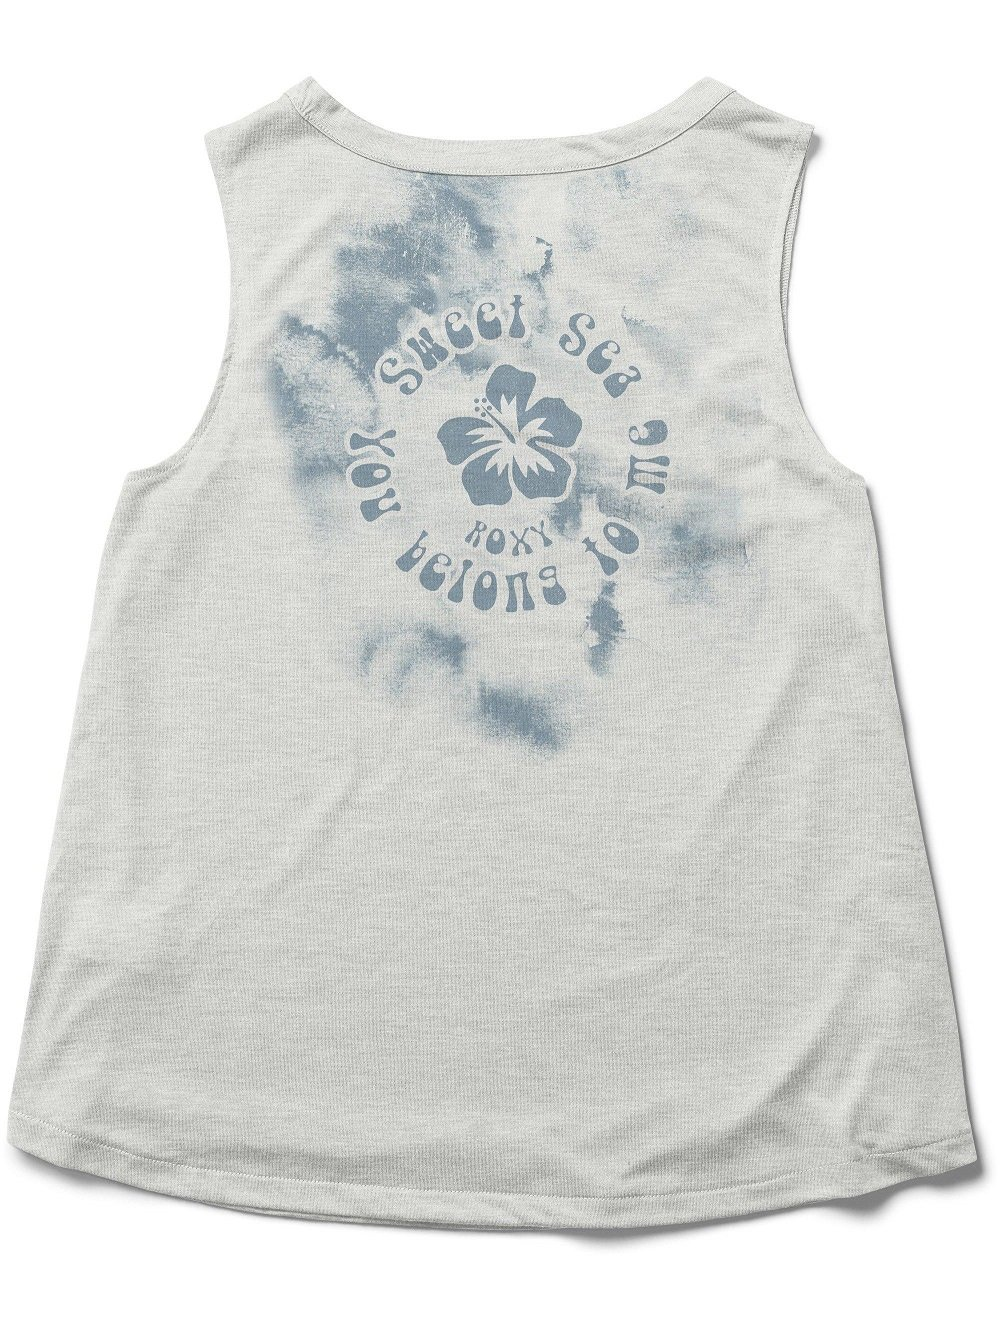 Roxy Ladies Tank Muscle Sweet Sea